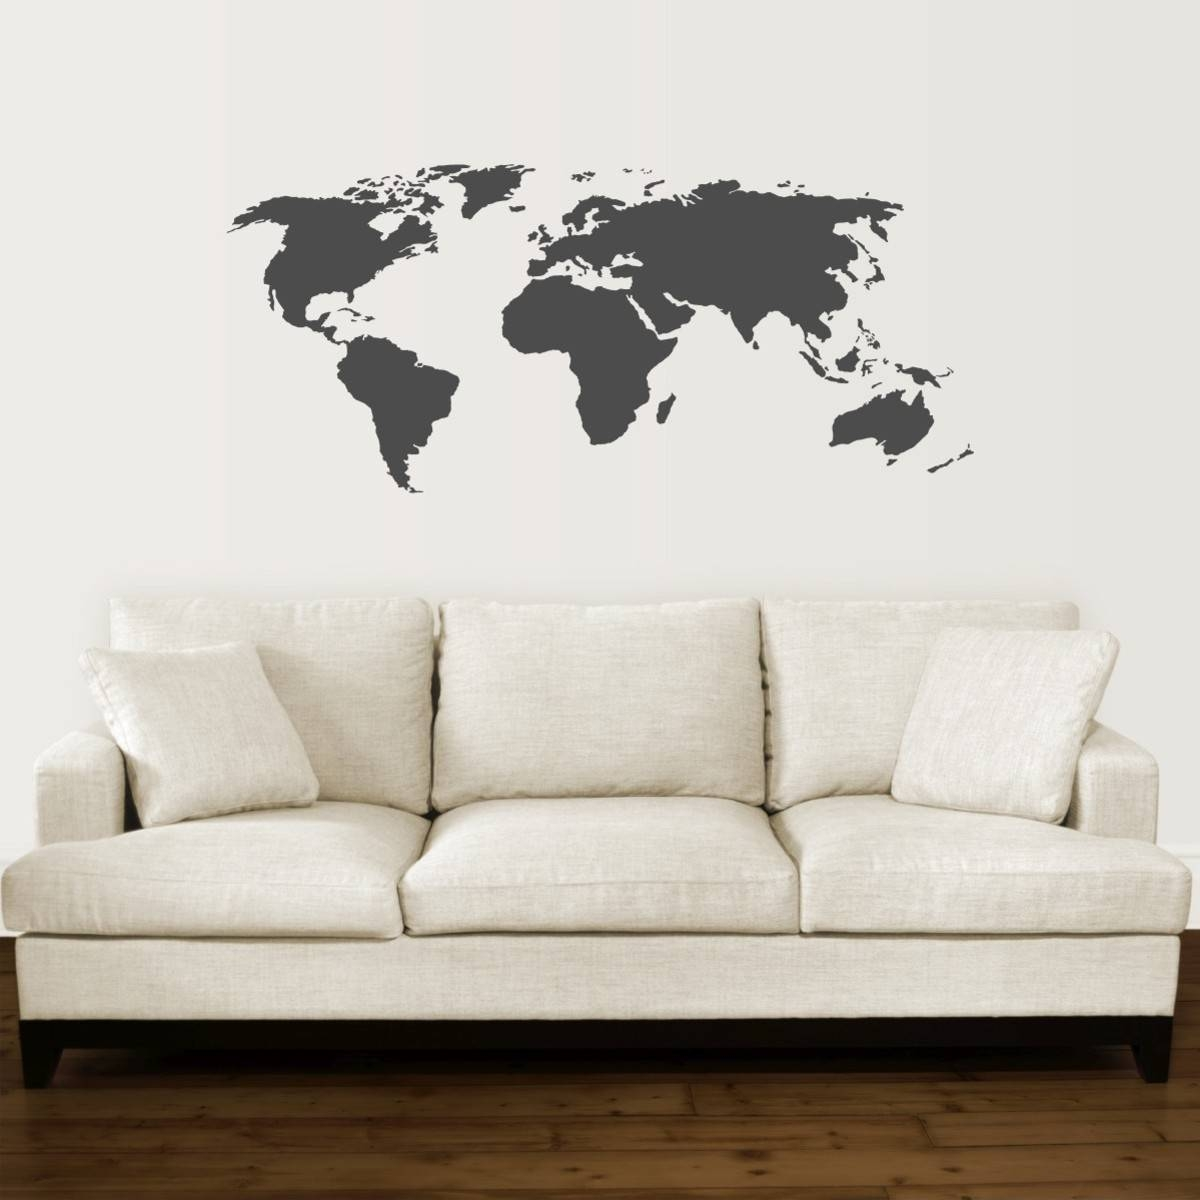 Zspmed Of World Map Wall Art Cool About Remodel Small Home Decor Regarding Most Recently Released Cool Map Wall Art (View 10 of 20)